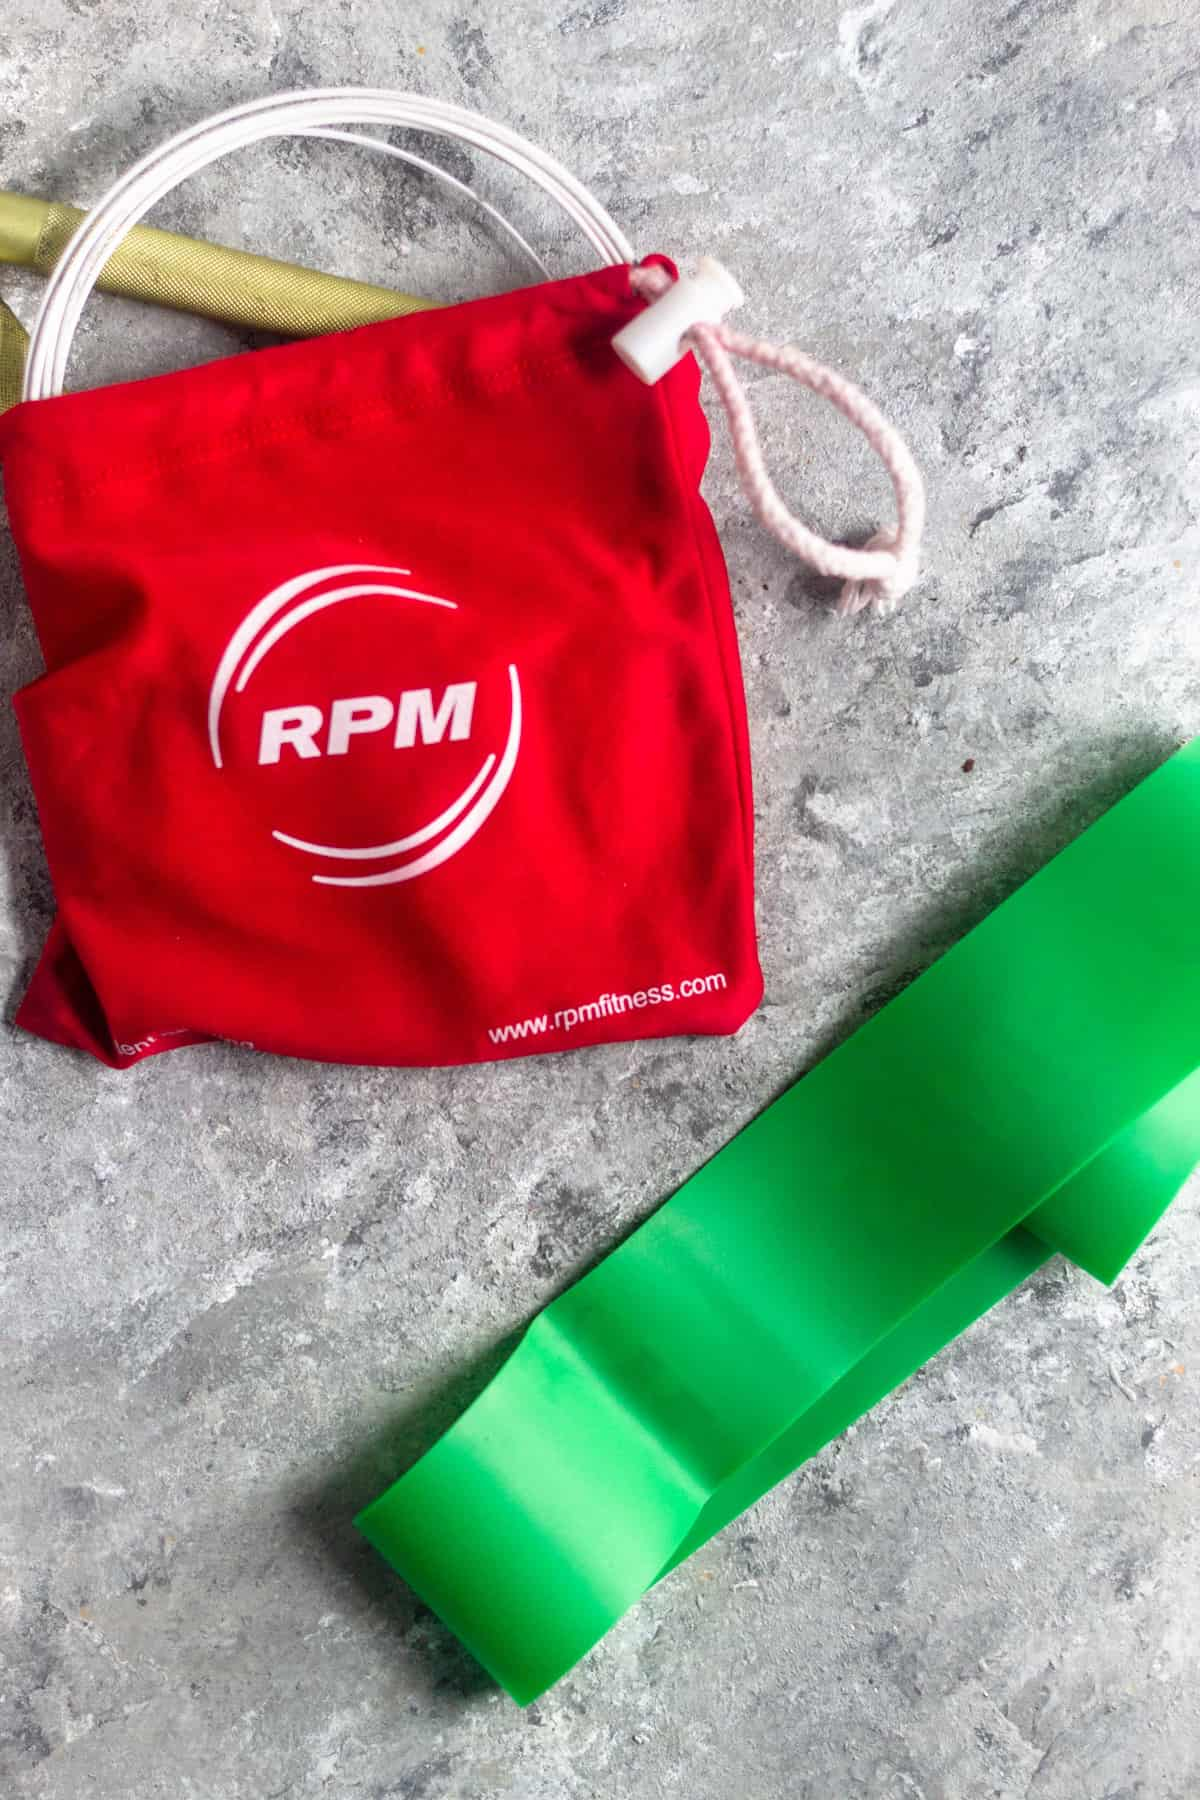 A jump rope in a small red bag and a green resistance band on a grey surface